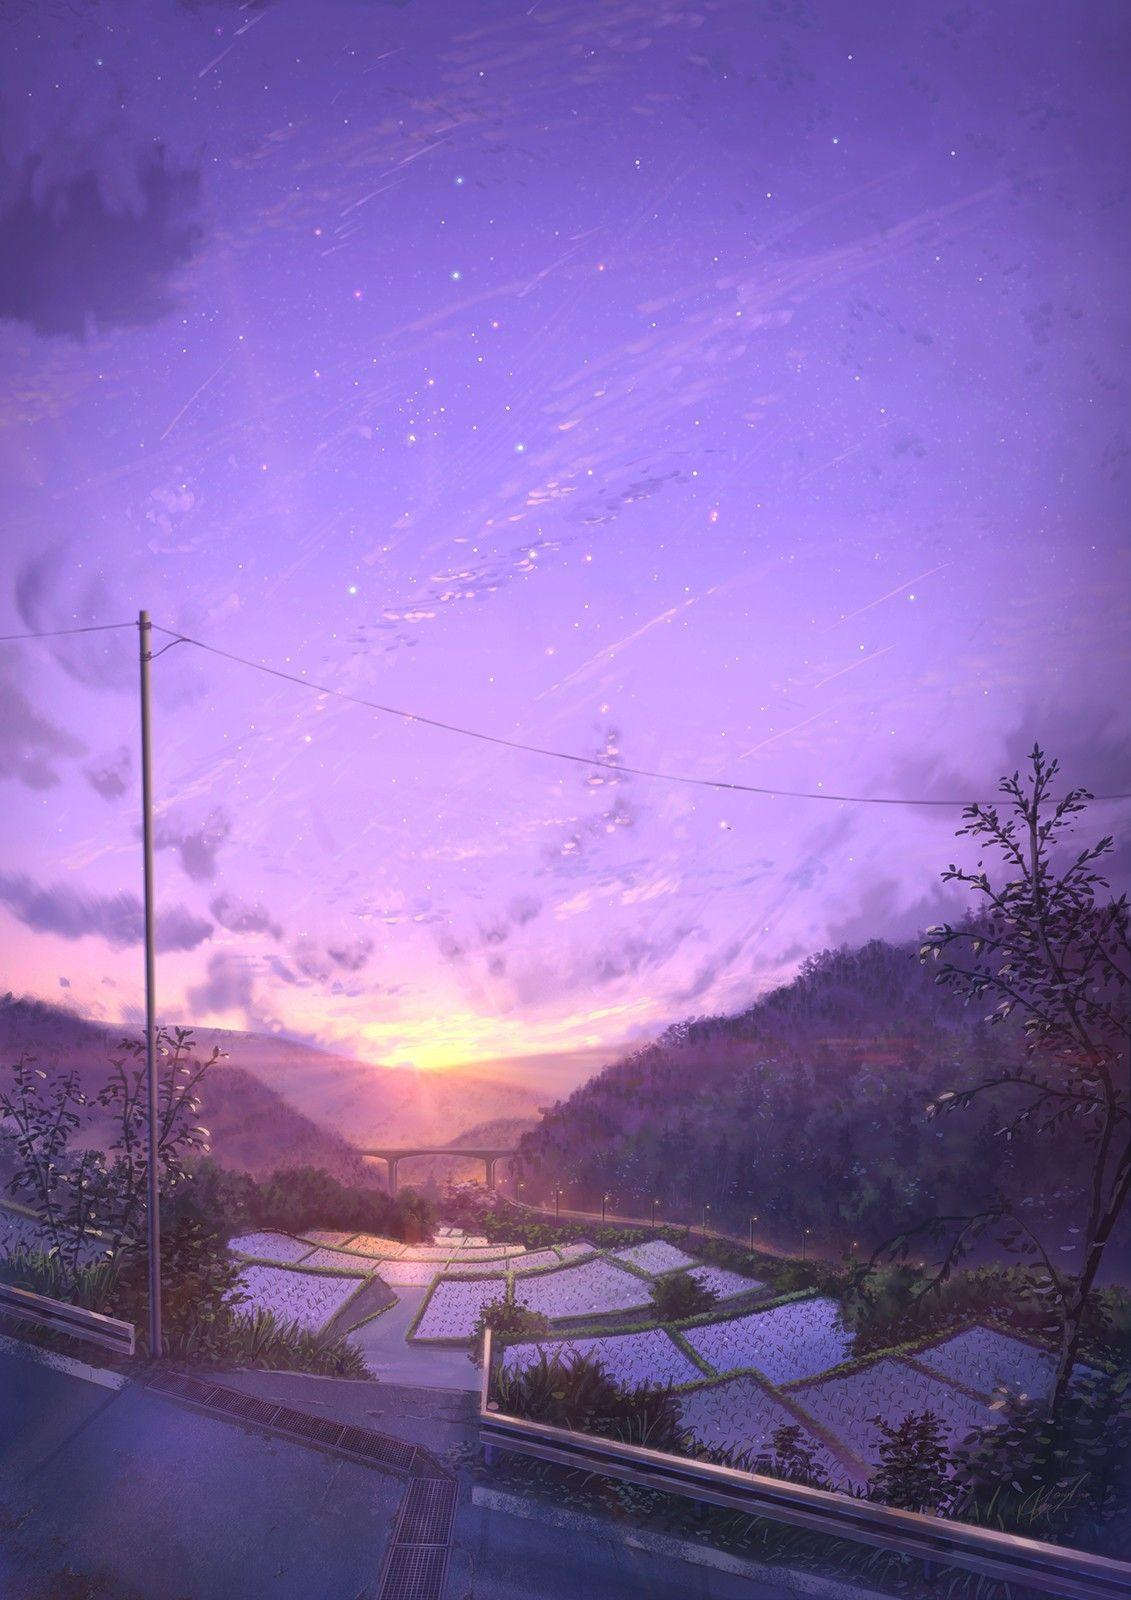 Scenery Anime Sunset Wallpaper